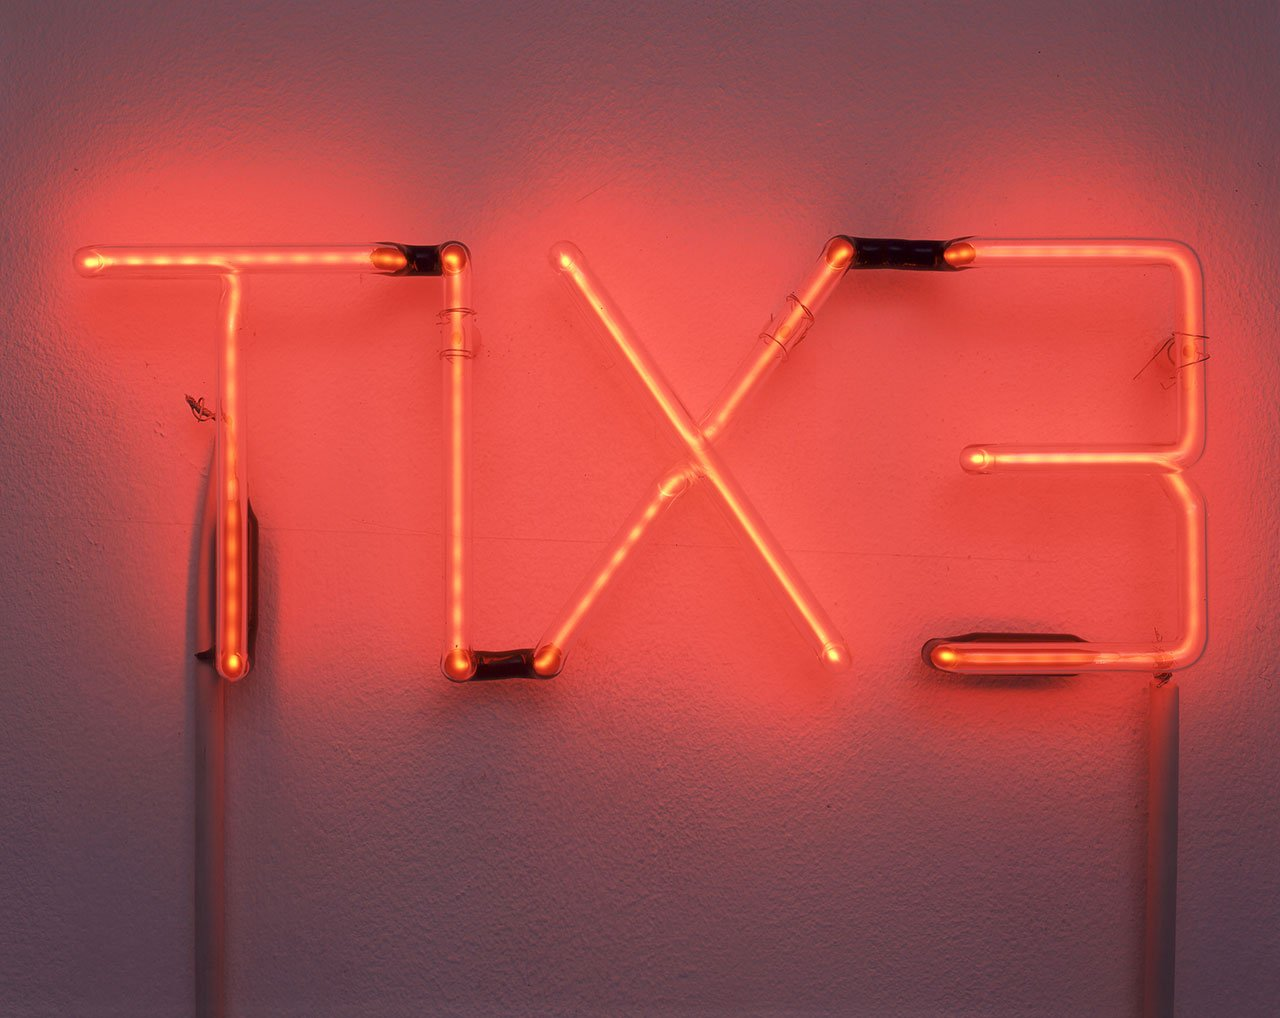 Cerith Wyn Evans, TIX3, 1996 © Cerith Wyn Evans. Courtesy White Cube Photo: Stephen White